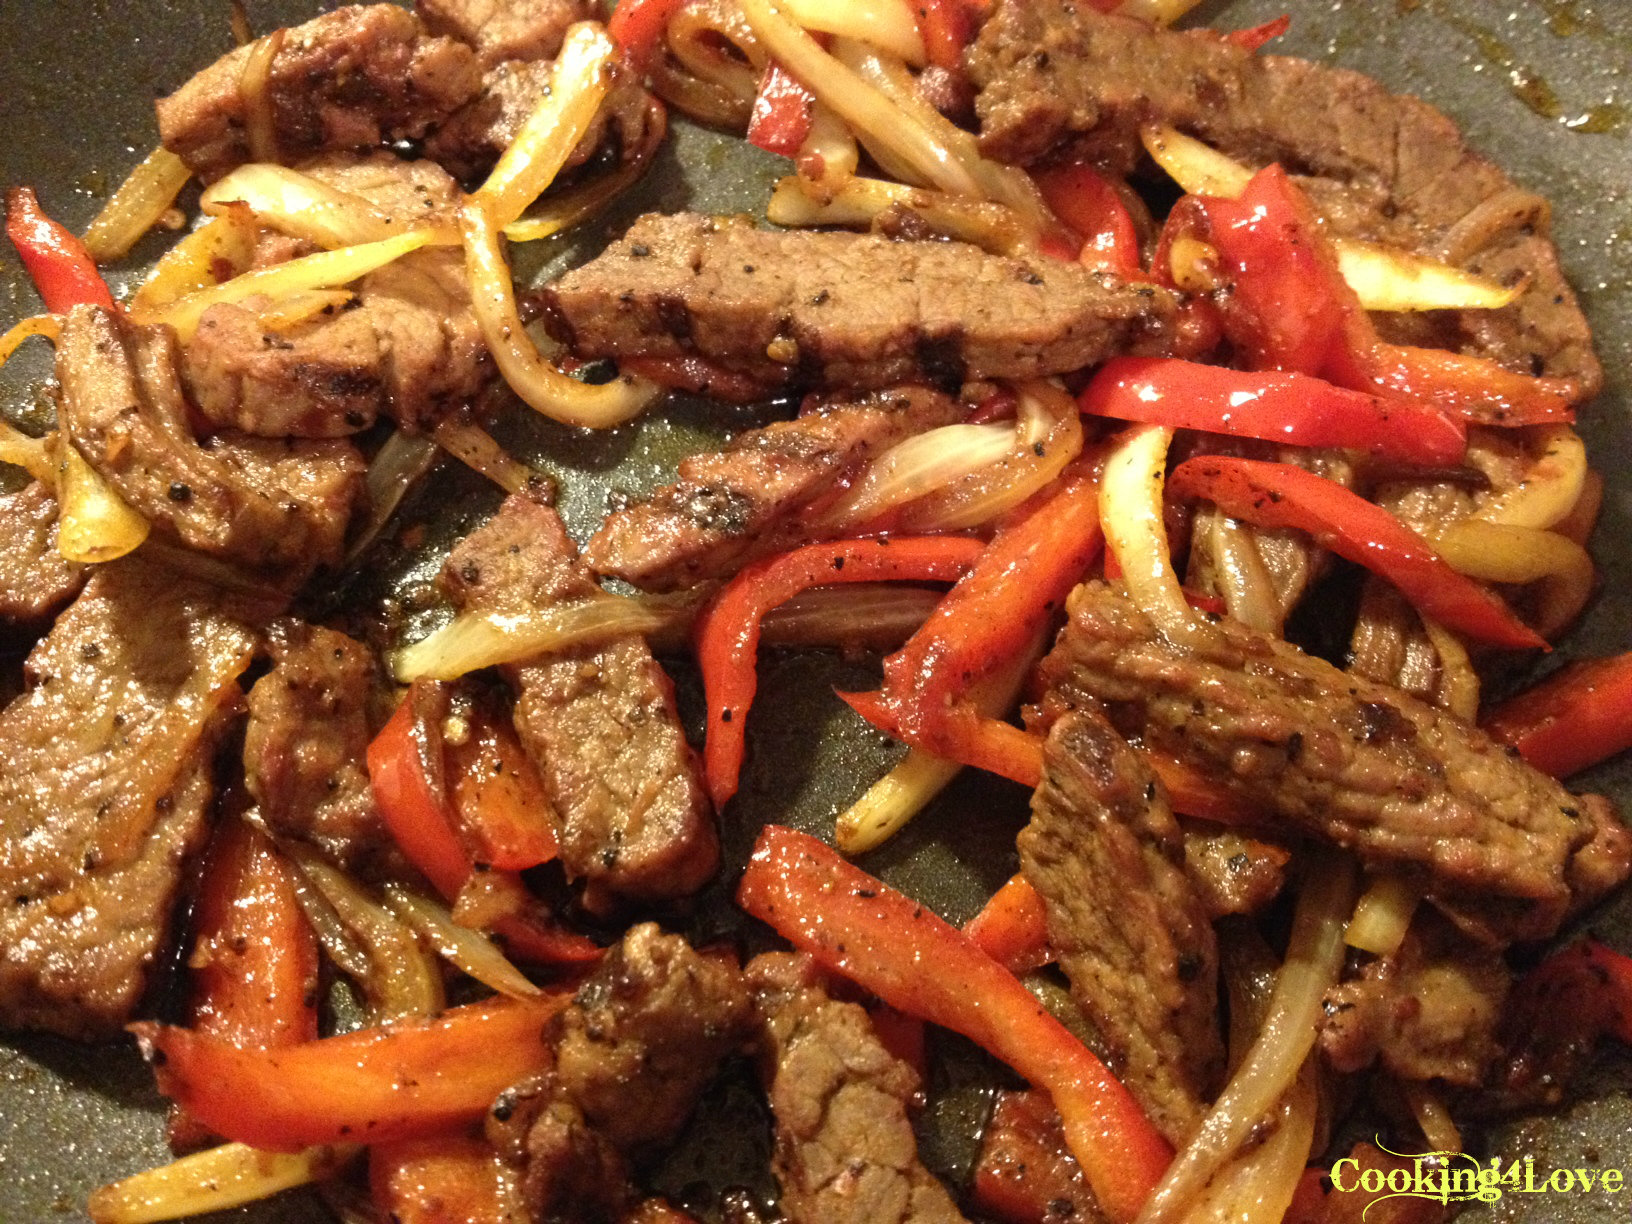 steak-fajitas-in-the-pan.jpg